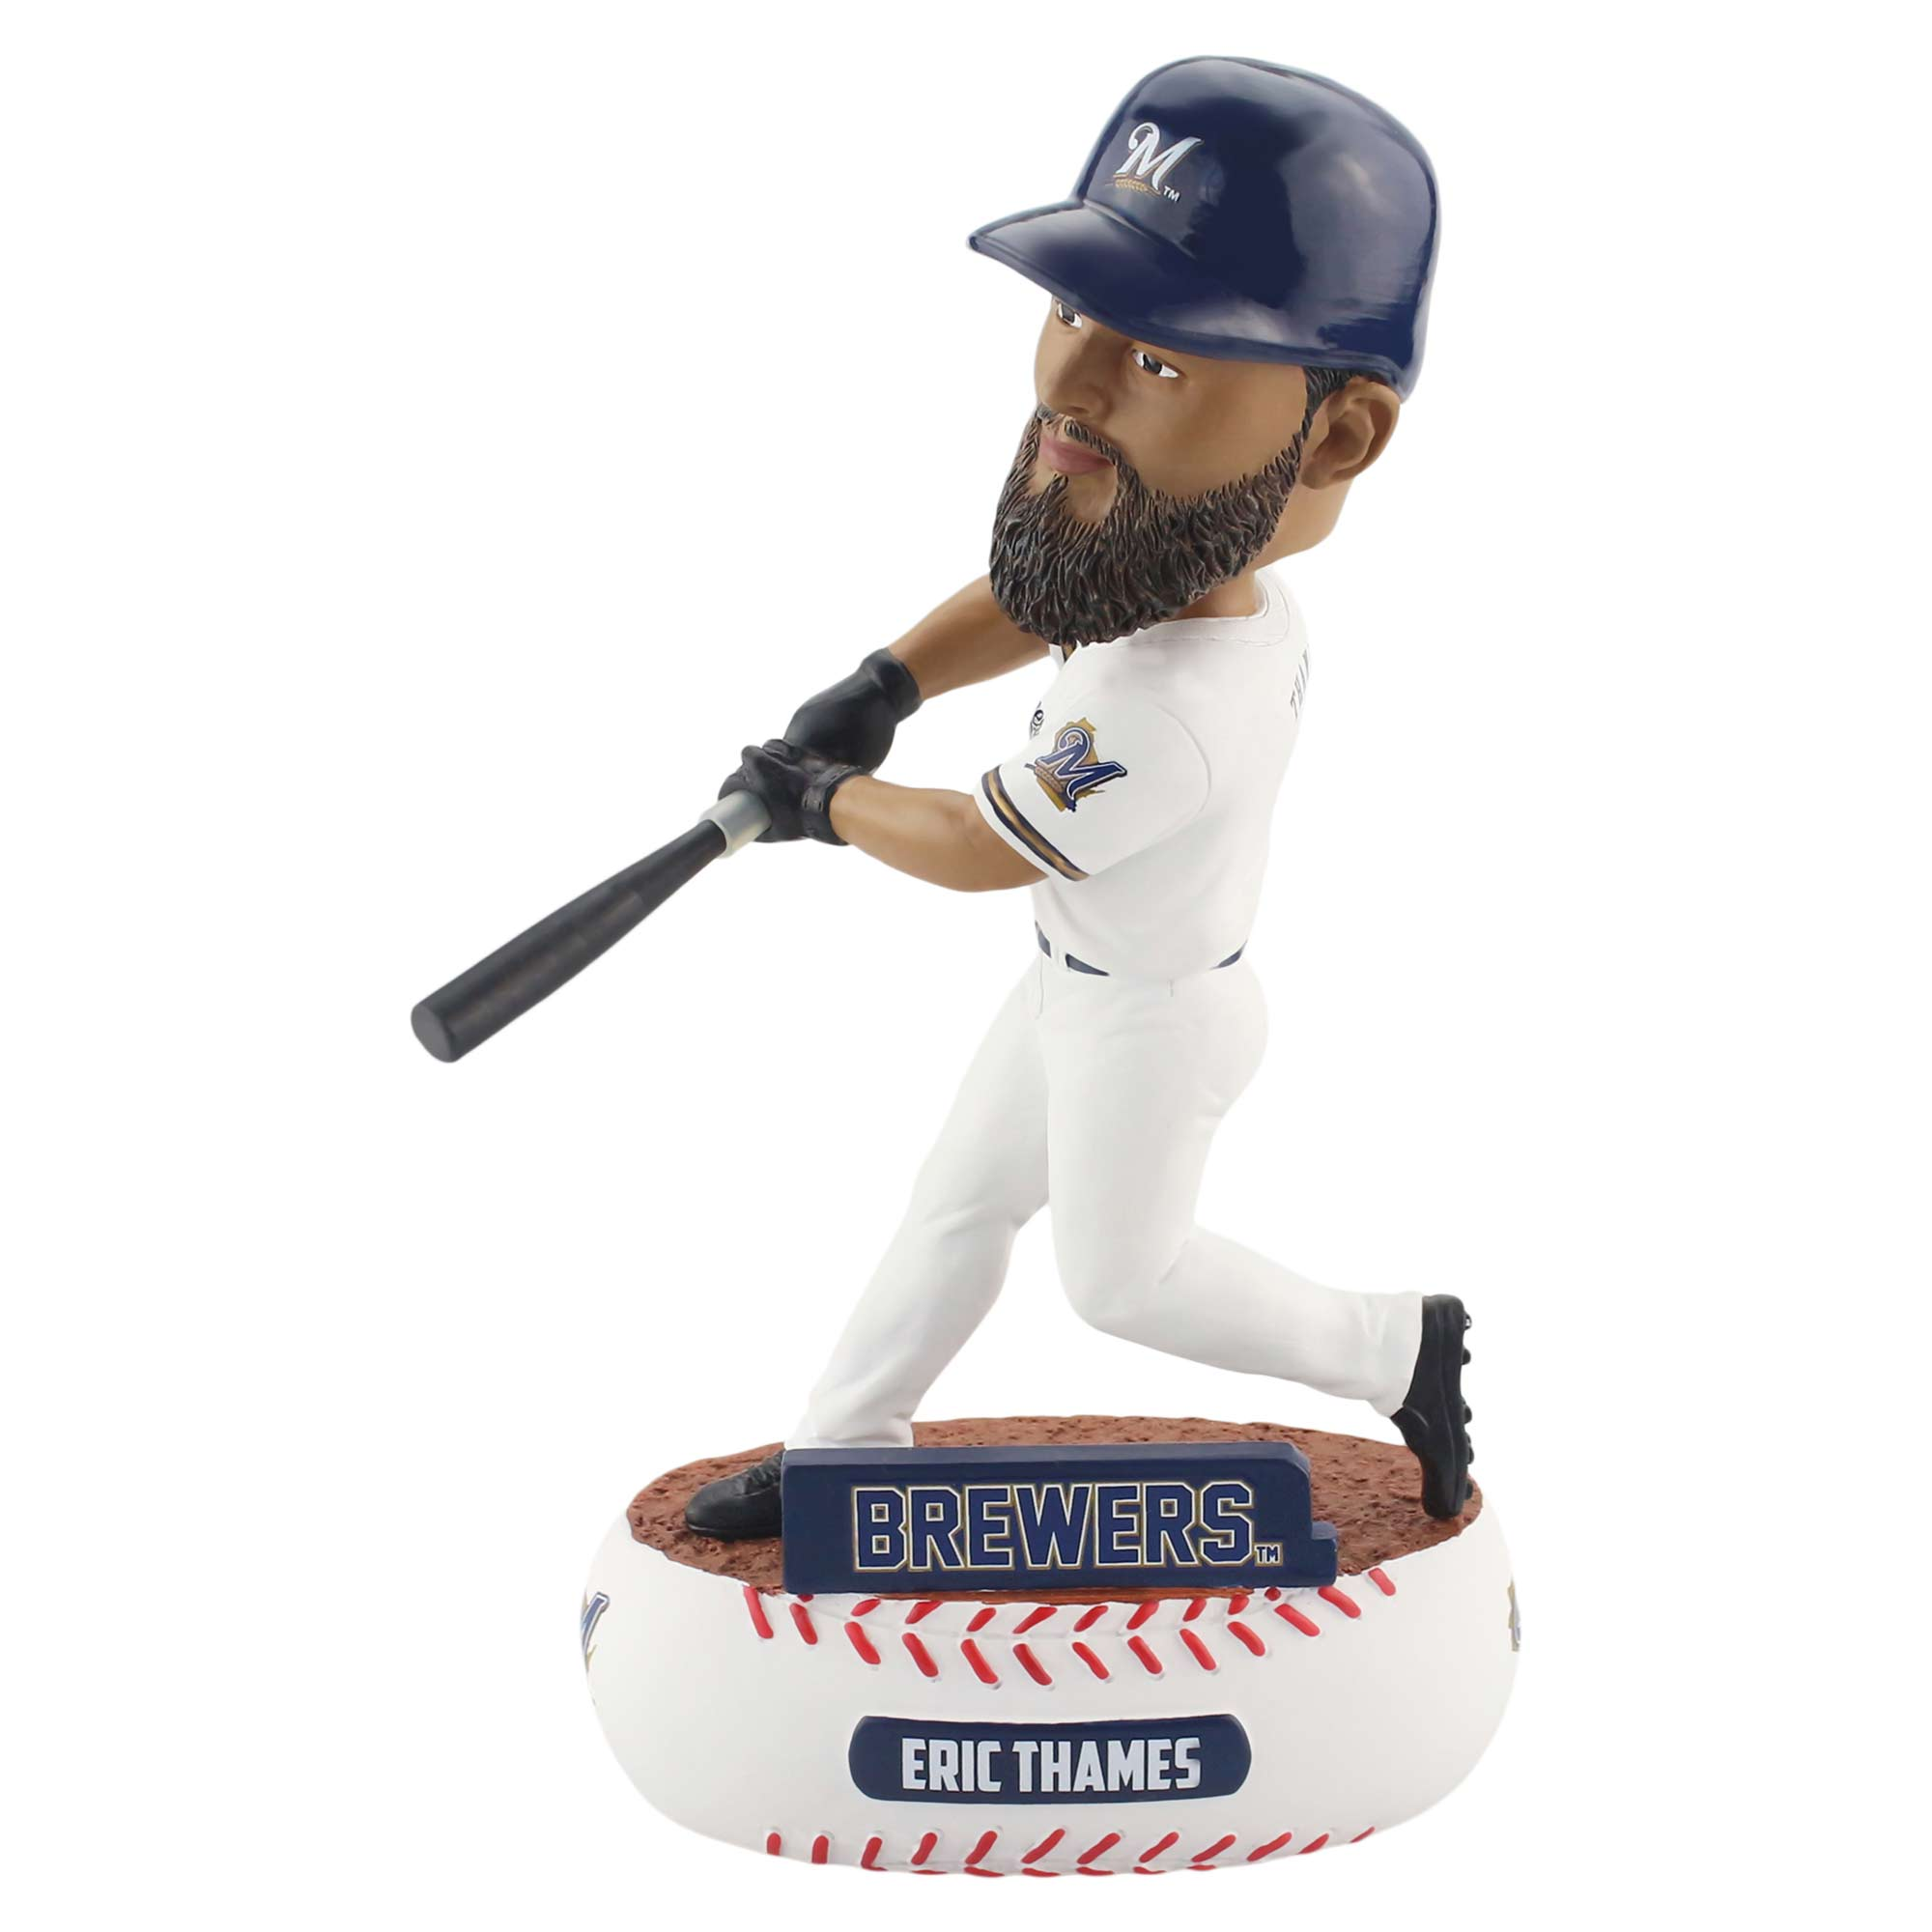 Eric Thames Milwaukee Brewers Player Baller Bobble - No Size